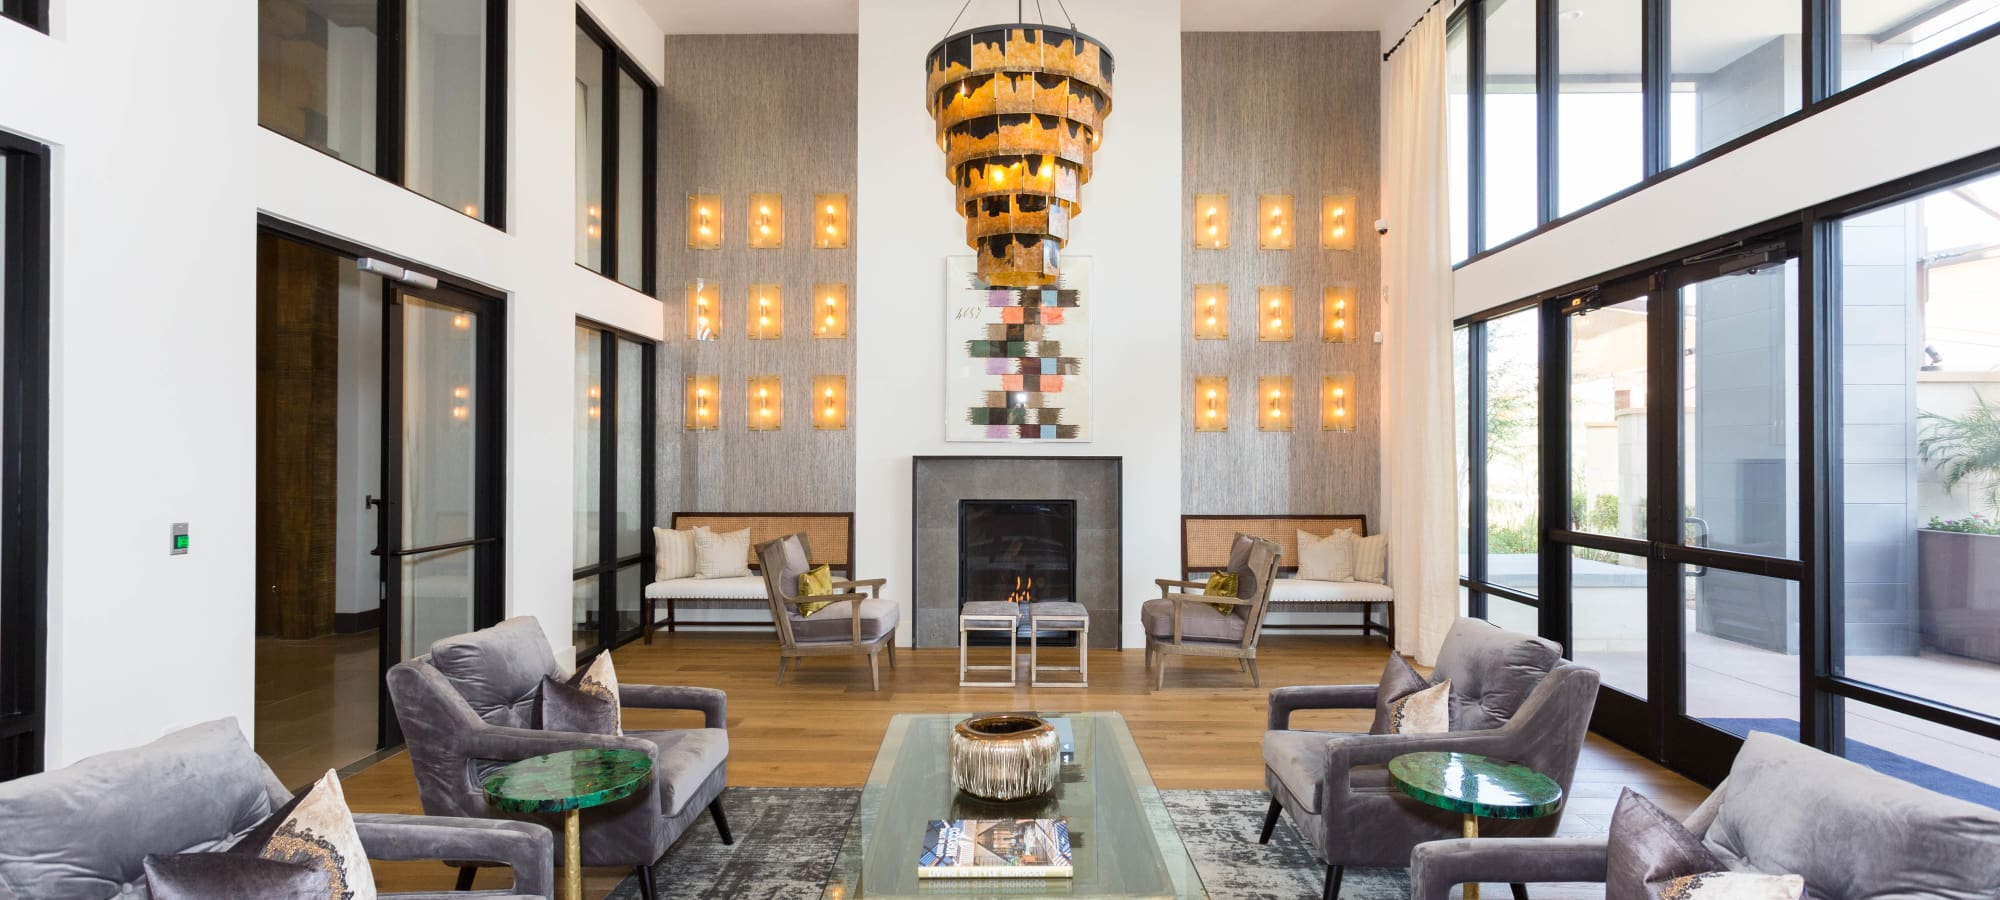 Lavishly decorated resident clubhouse interior at Avant at Fashion Center in Chandler, Arizona